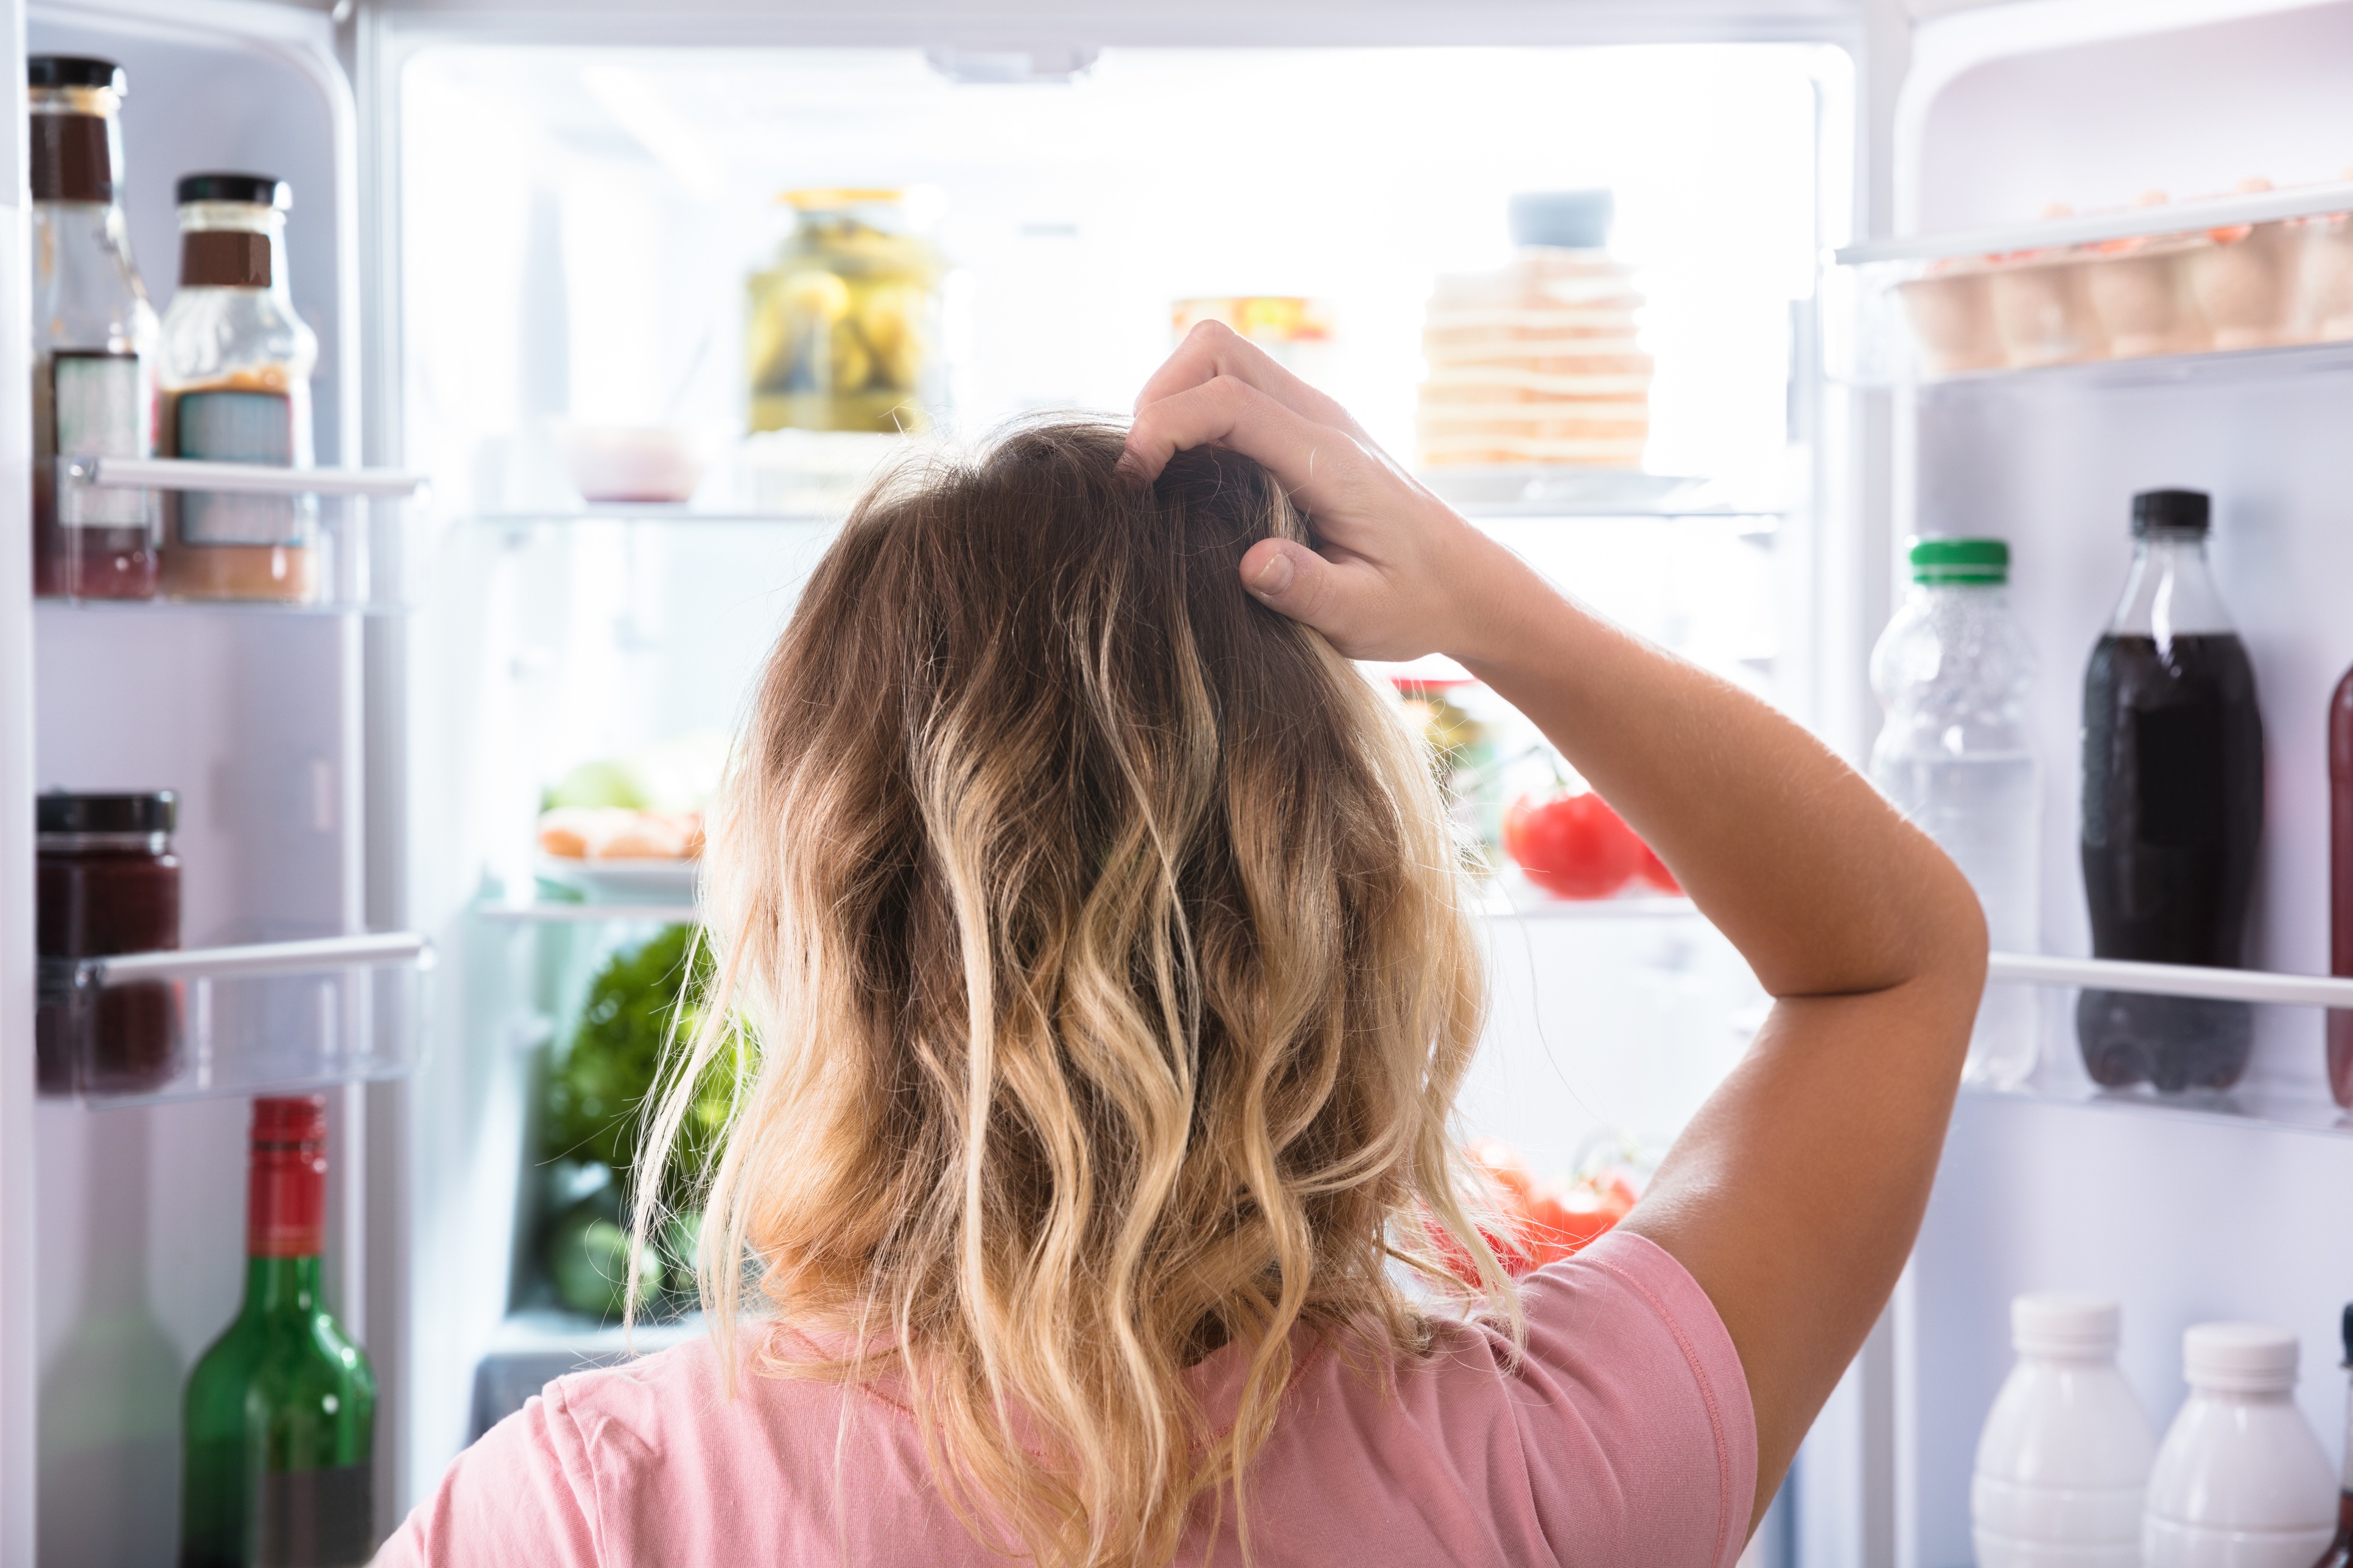 A person looking into a refrigerator full of food